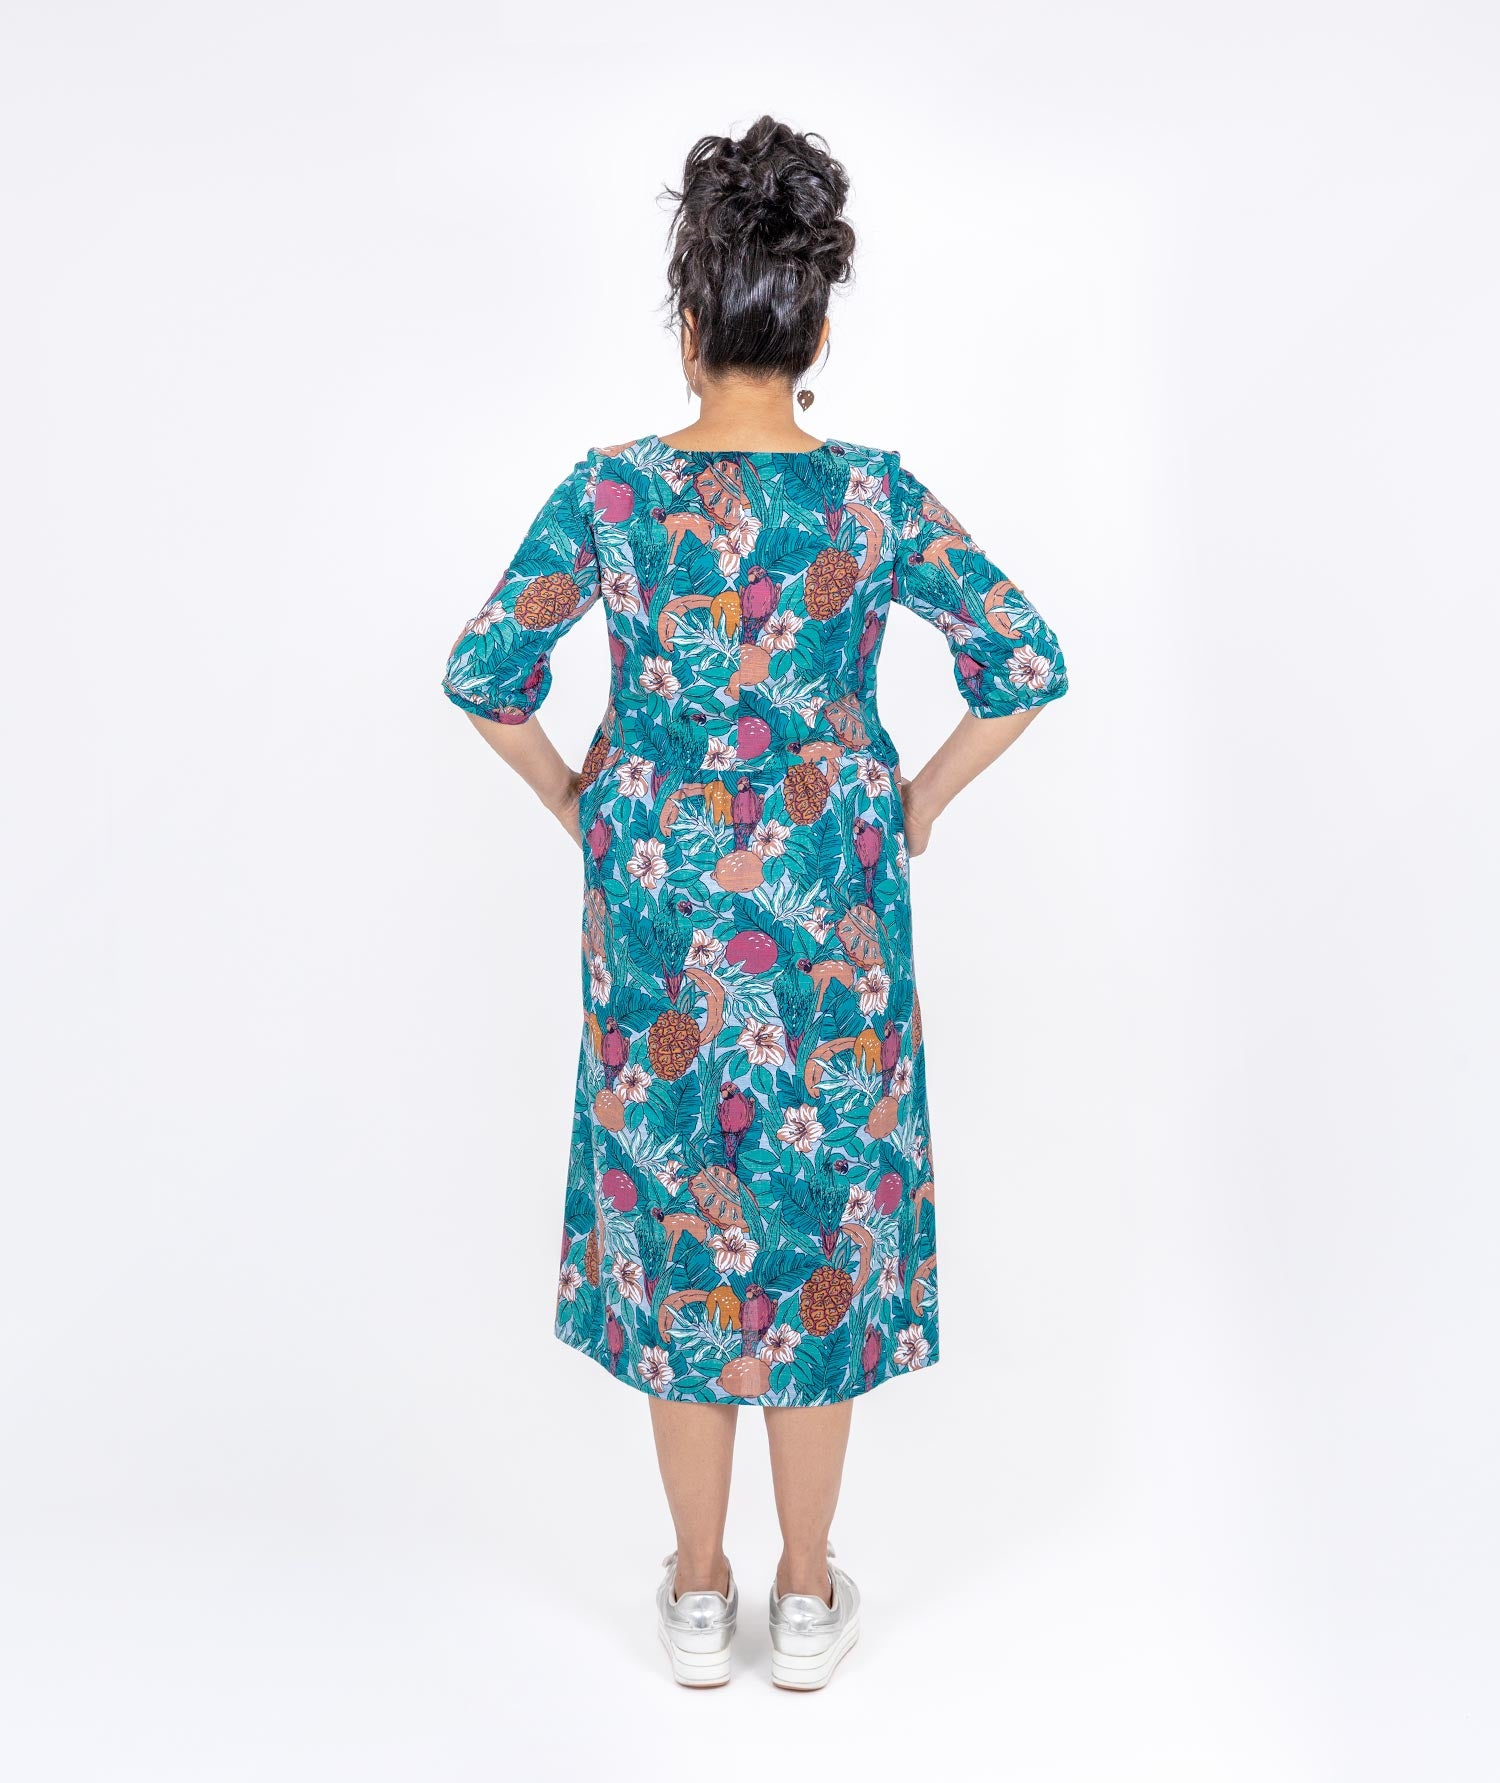 Luxury Print Dress by Holi Boli